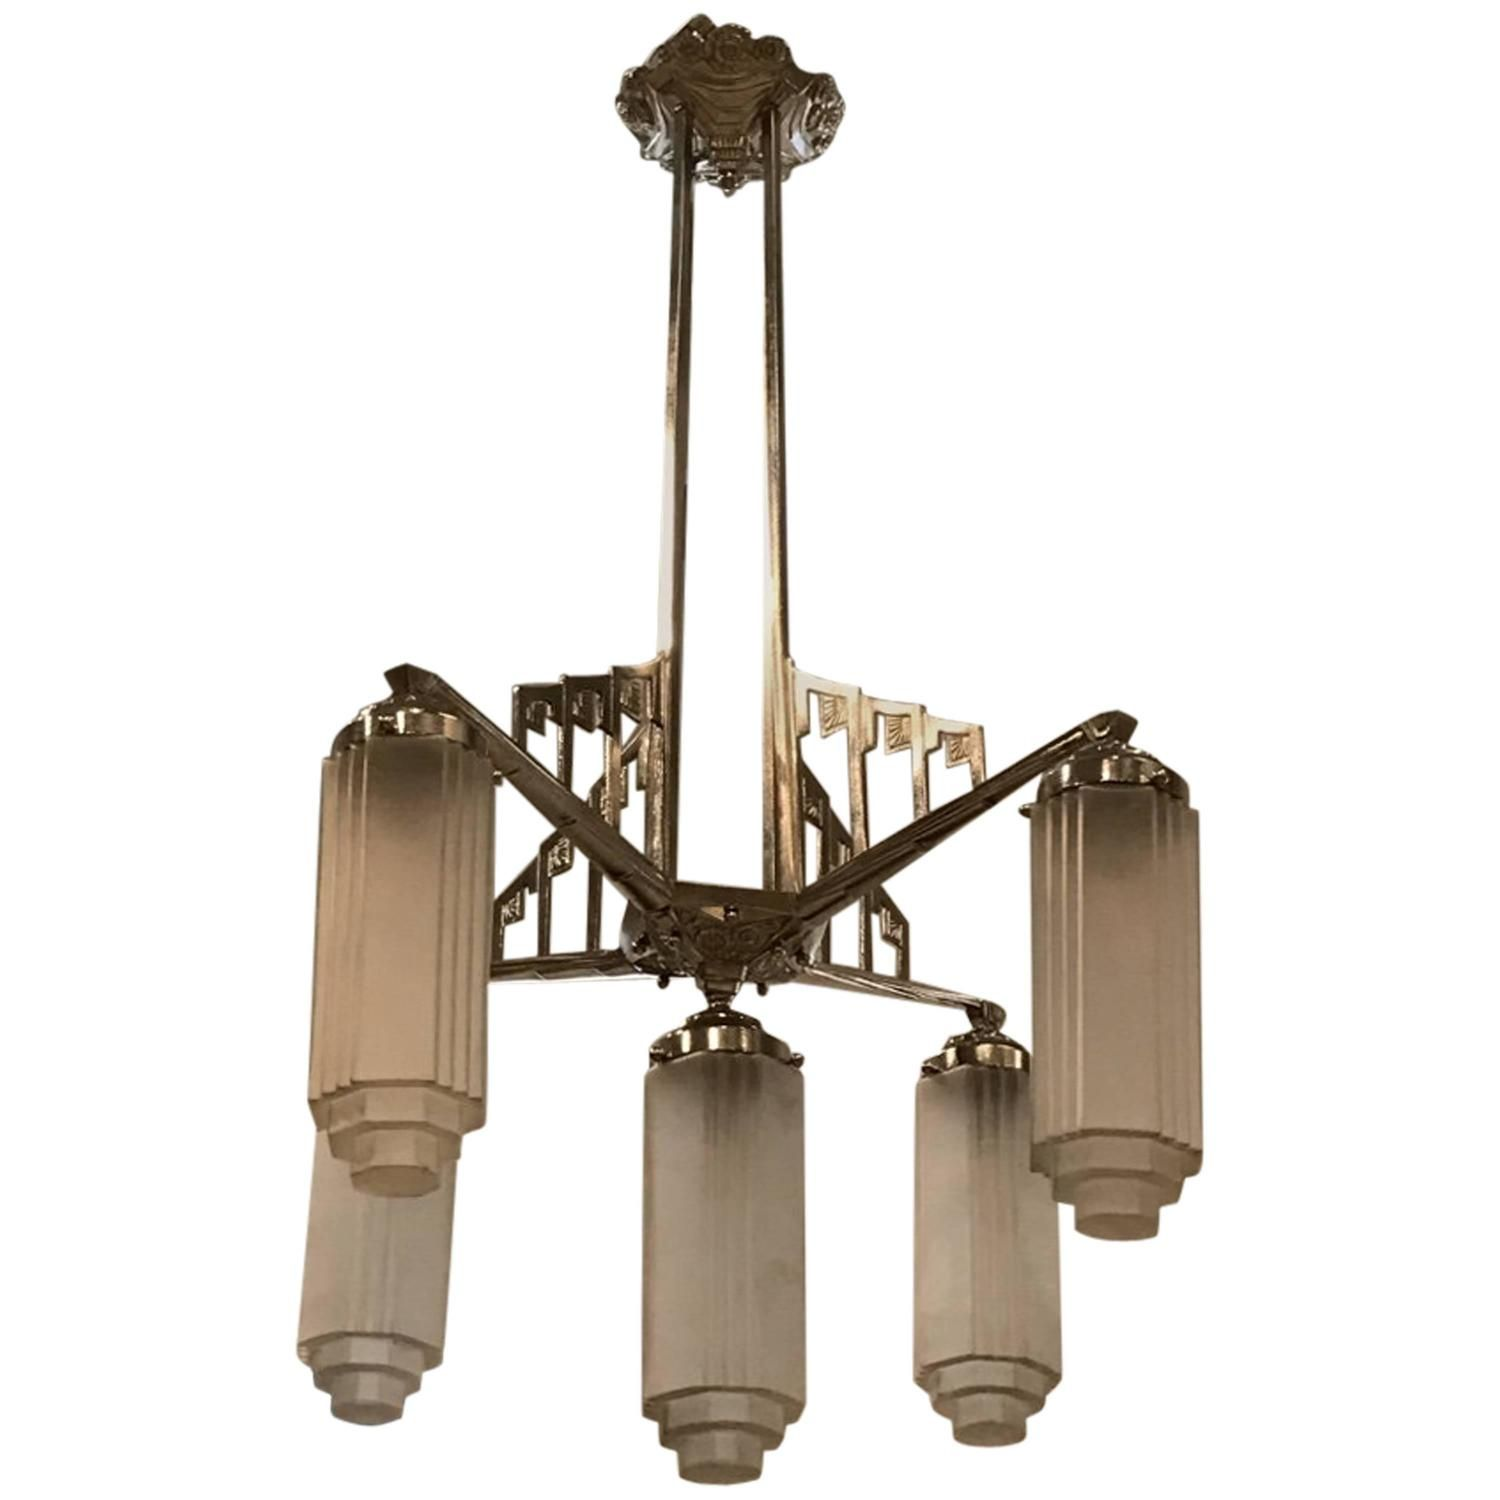 French art deco chandelier with skyscraper motif see more antique and modern chandeliers and pendants